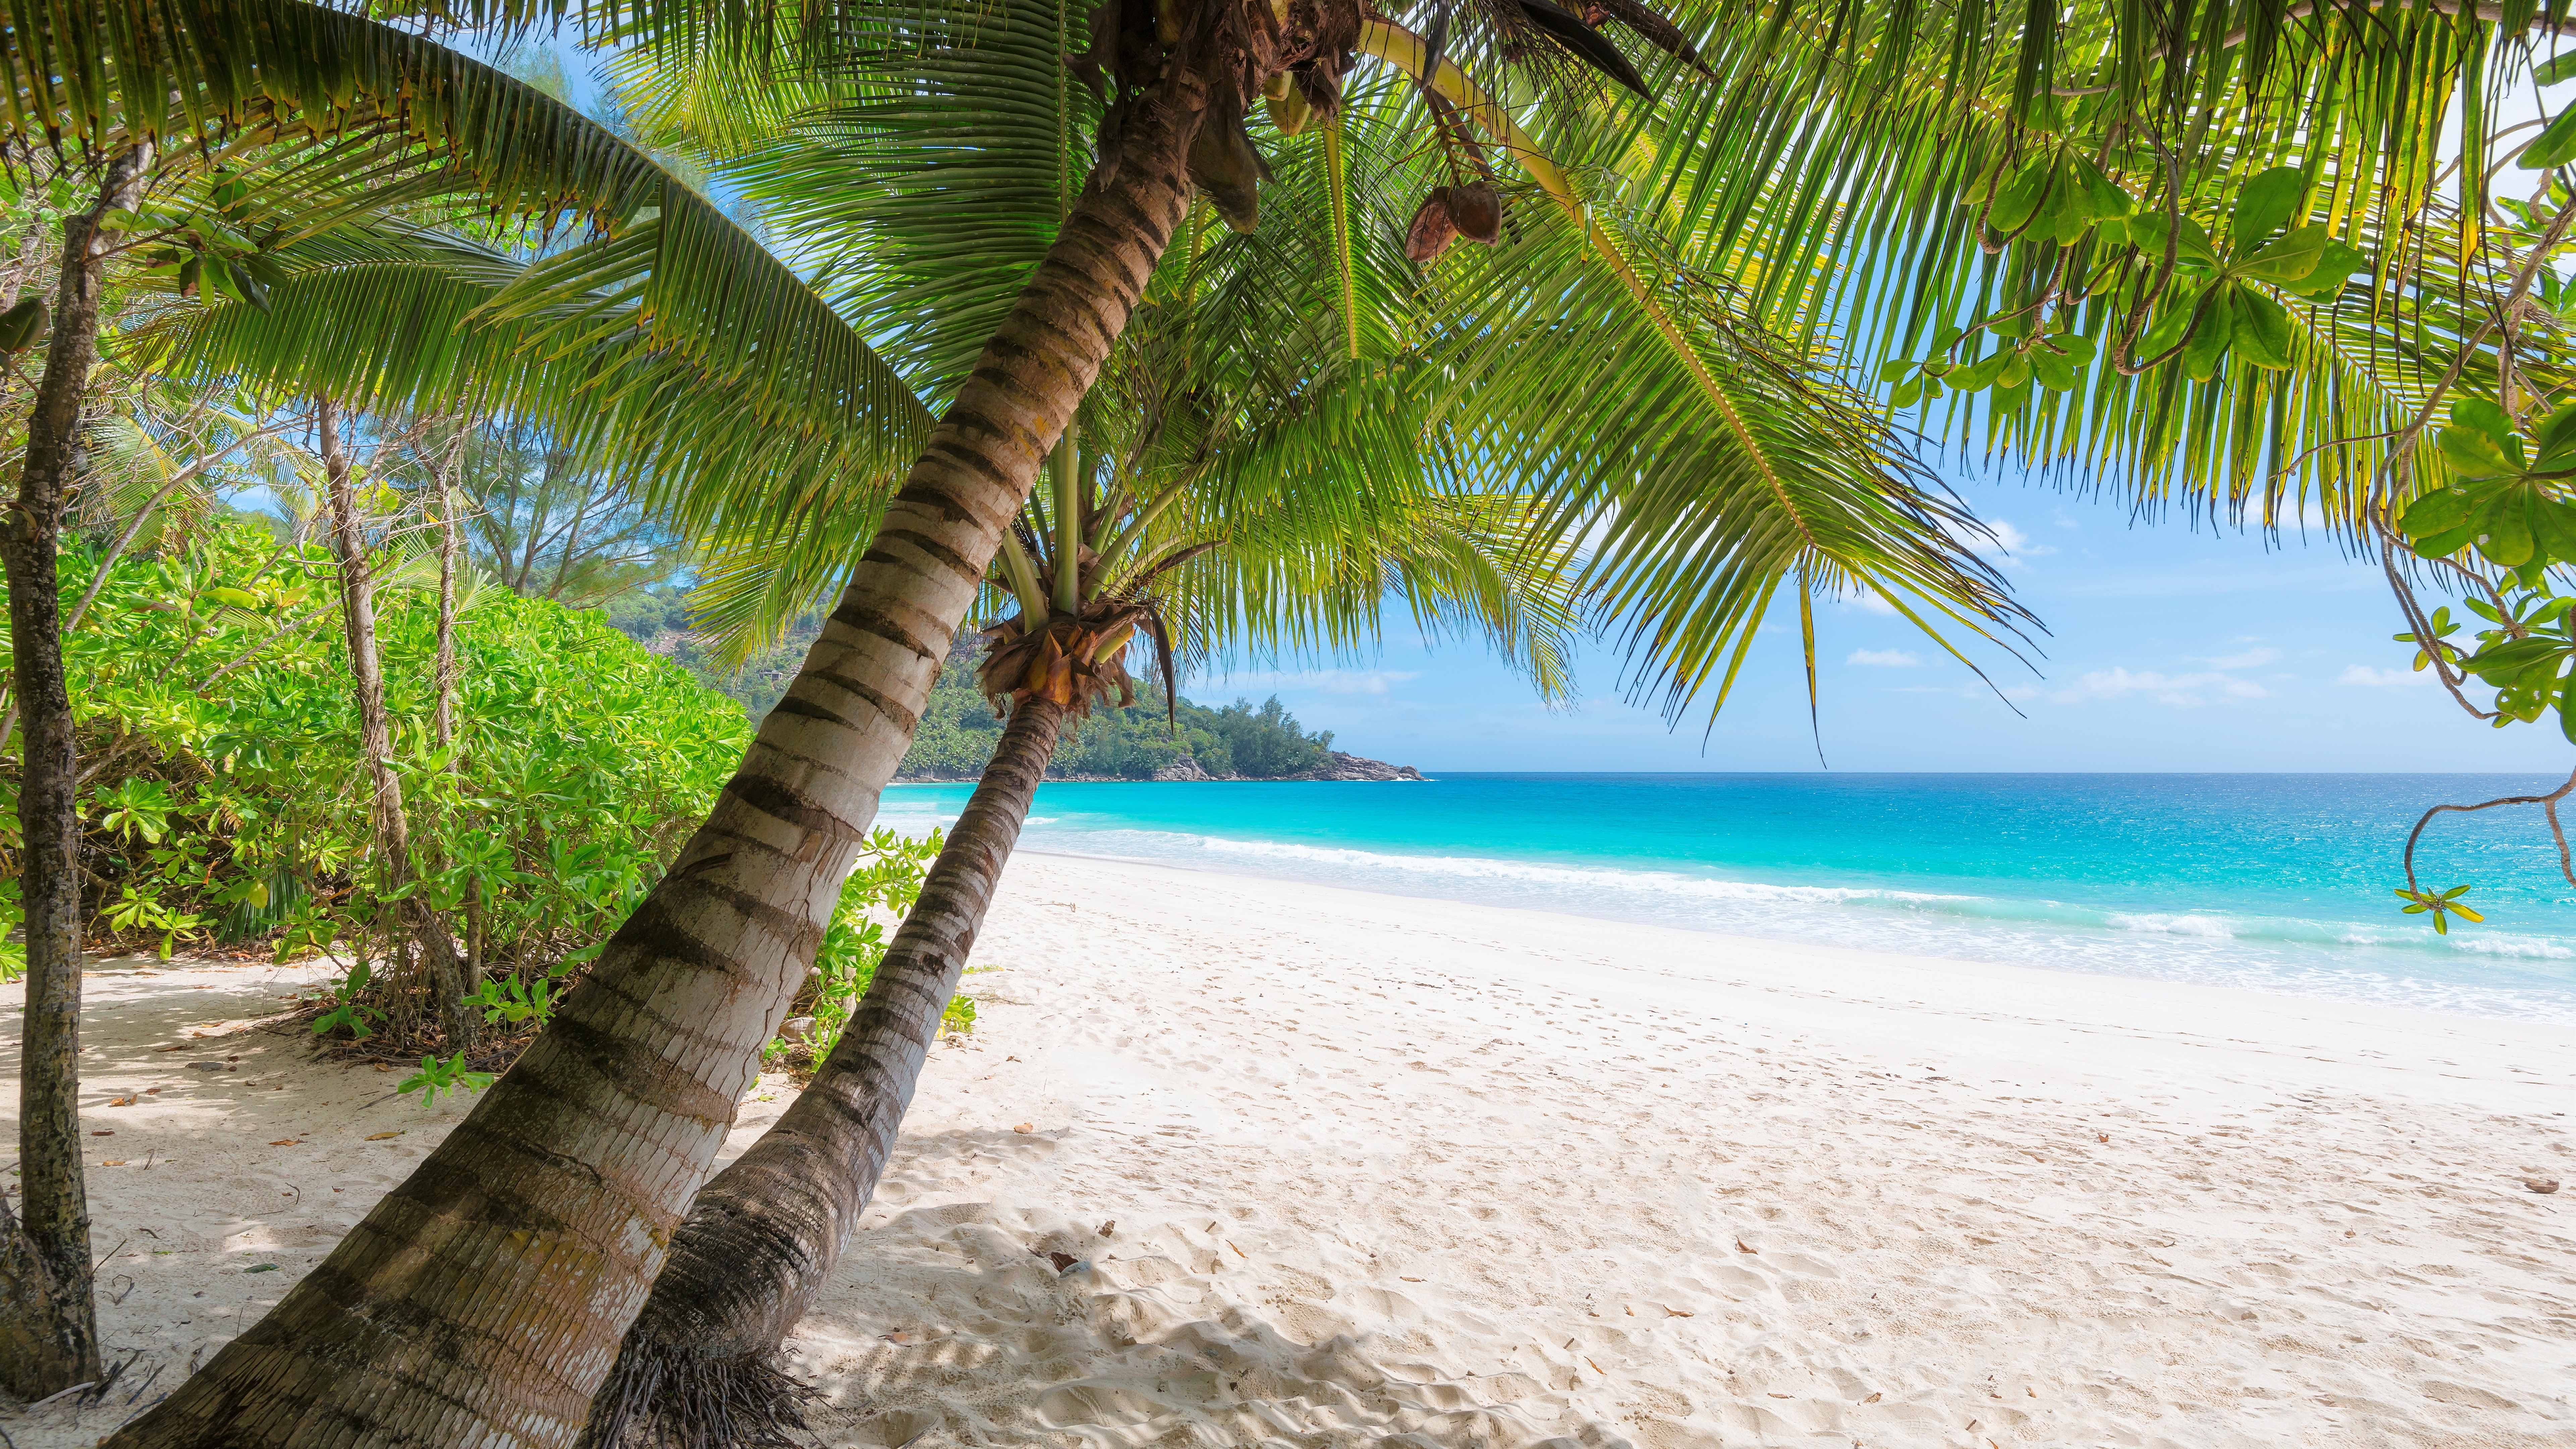 Wallpaper Palm Trees Beach Sea Tropical Summer 7680x4320 Uhd 8k Picture Image